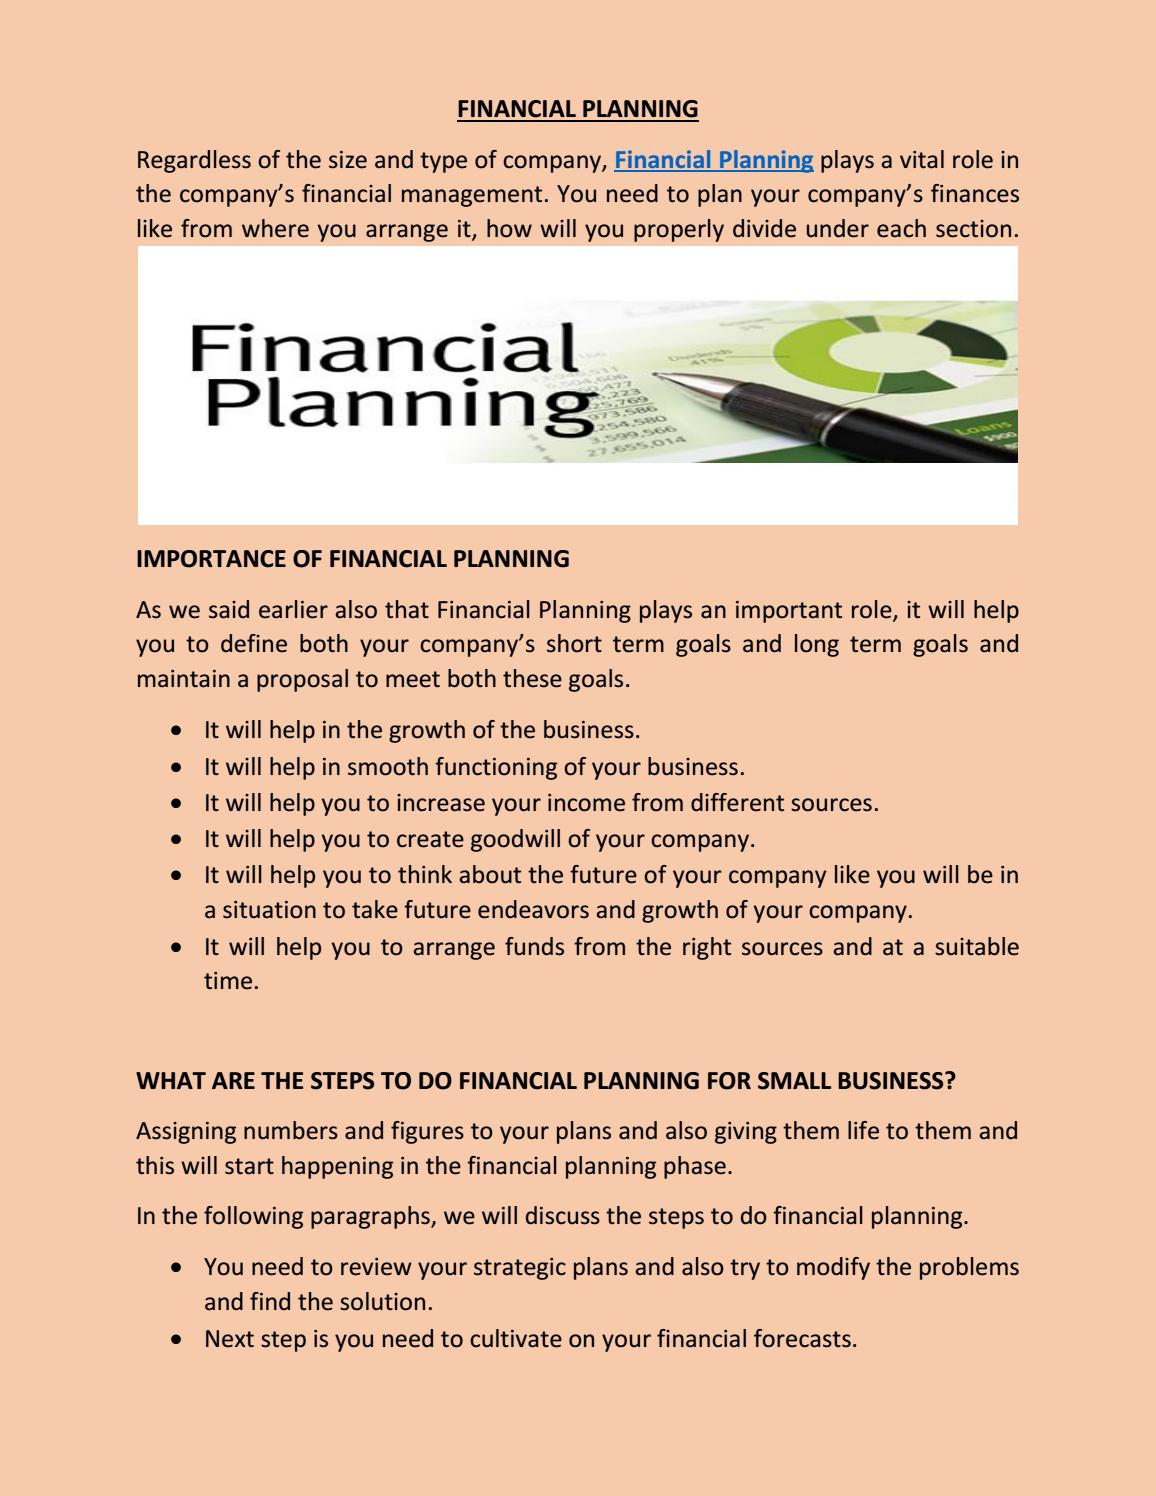 FINANCIAL PLANNING by Anakeen - issuu